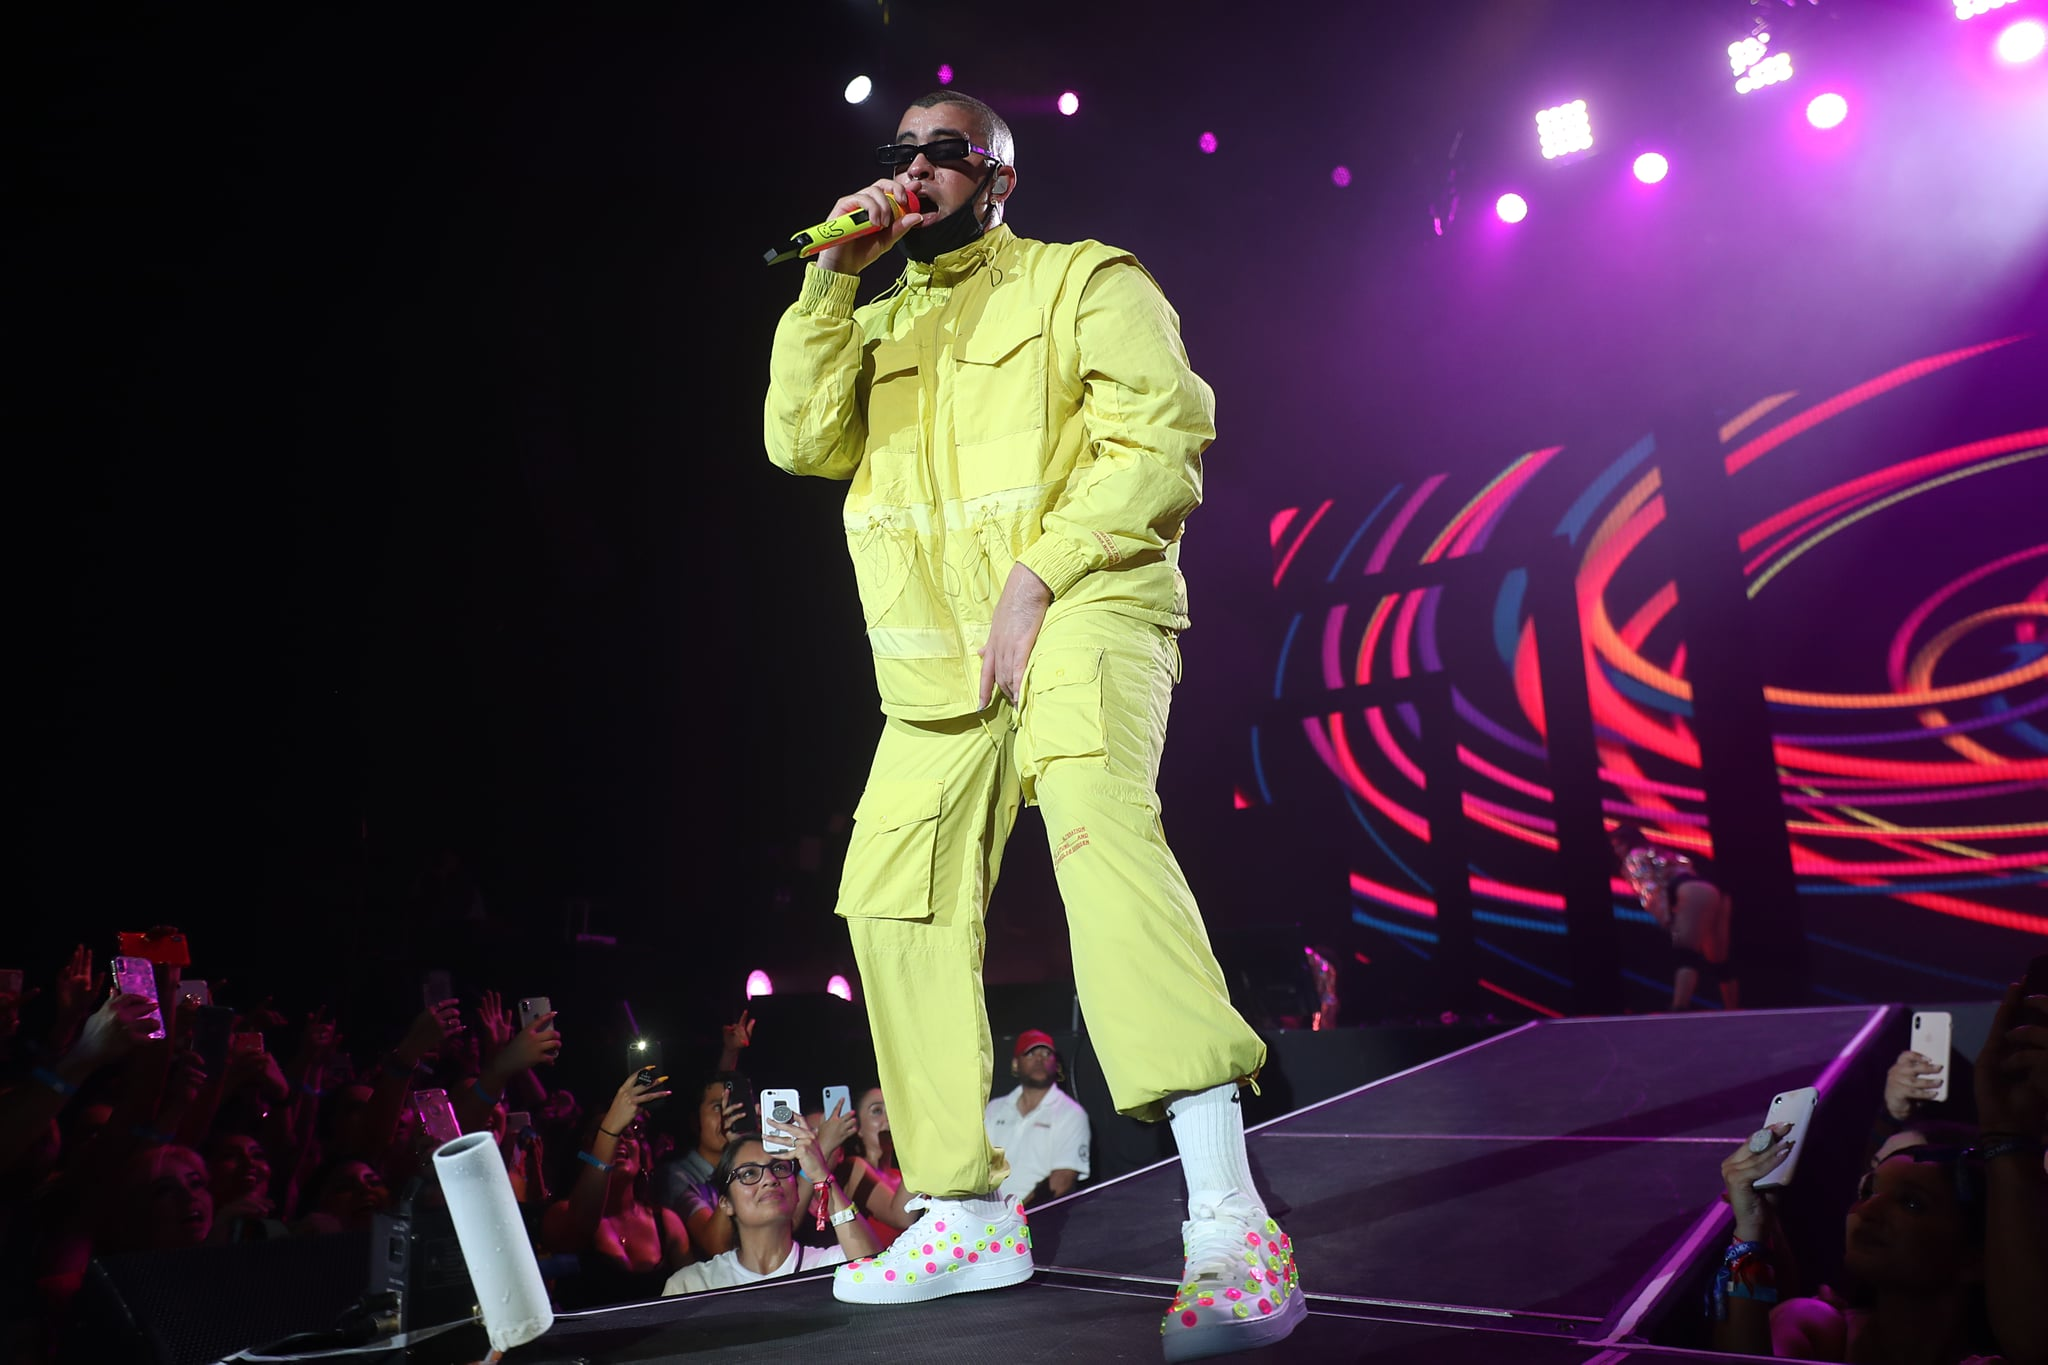 DALLAS, TX - AUGUST 08: Puerto Rican singer Bad Bunny performs on stage during the Uforia Latino Mix Live: Dallas at Dos Equis Pavilion on August 8, 2019 in Dallas, Texas.  (Photo by Omar Vega/Getty Images)